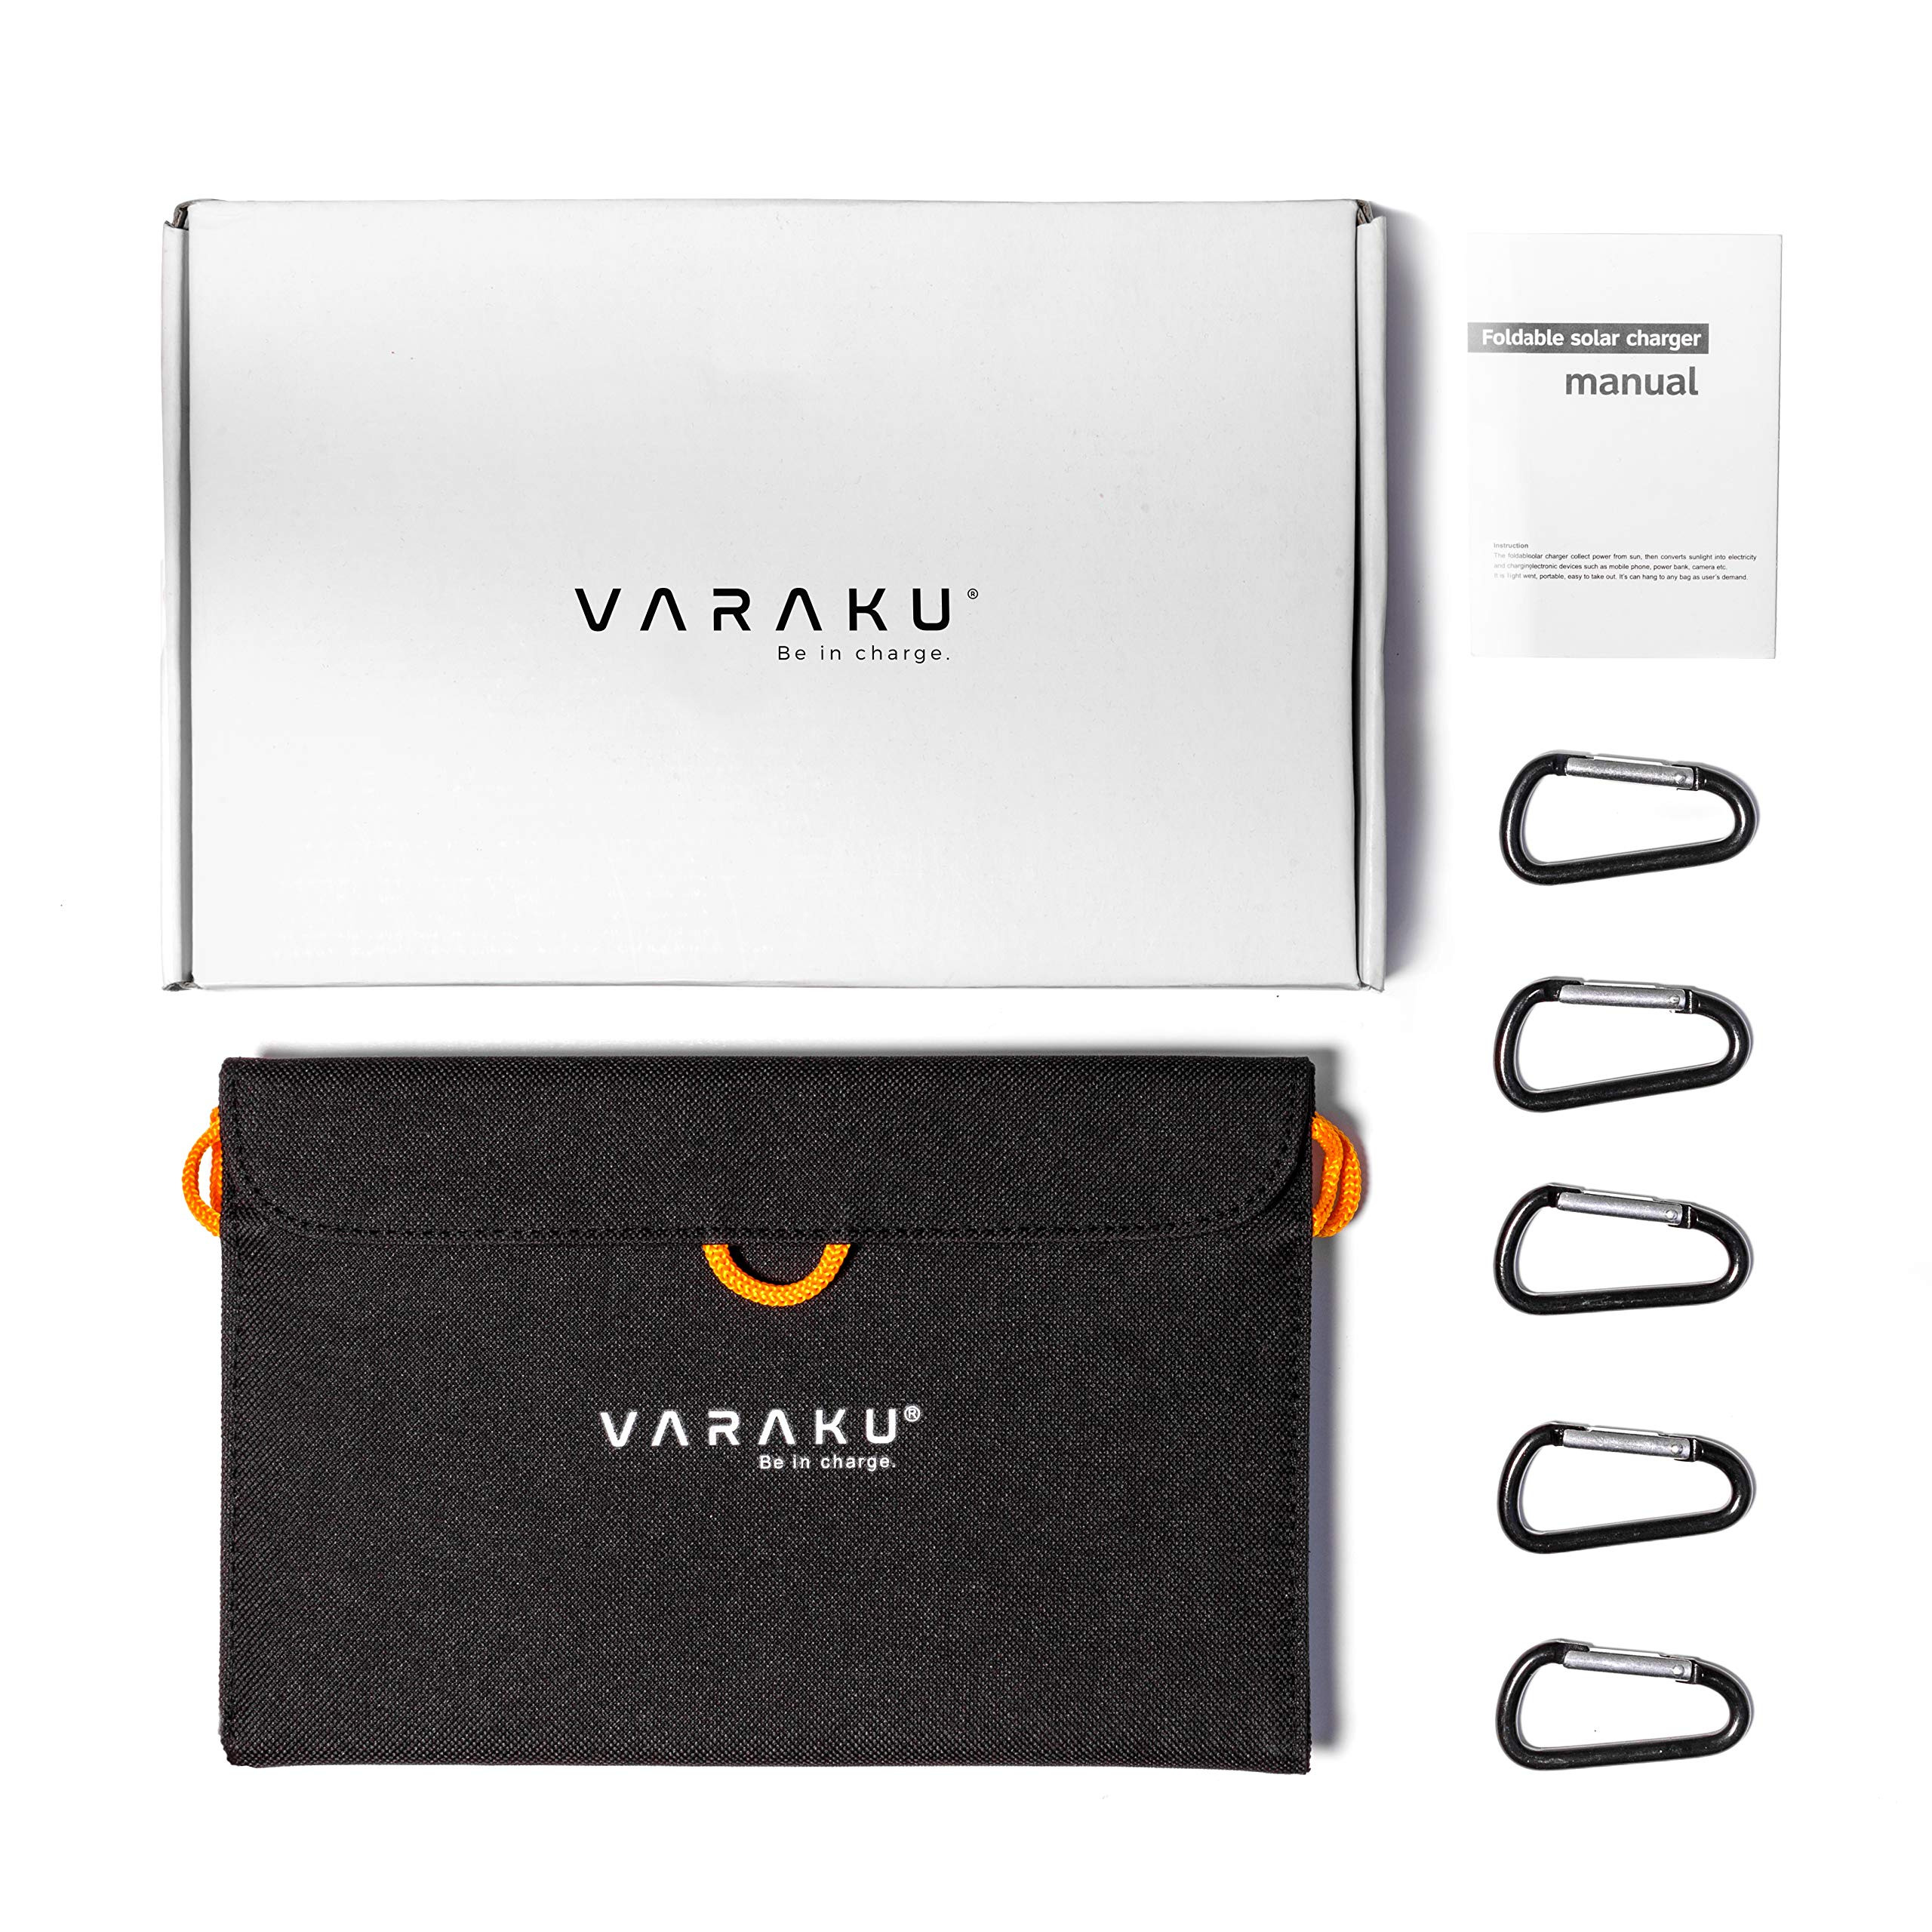 Portable Solar Charger 10W - Dual USB Solar Panel Foldable – Best Power for, iPhone, X, 8, 7, 6s, iPad, Cell Phone Android & Electronic Devices - Waterproof Sun Phone Charger for Camping & Hiking by VARAKU (Image #7)